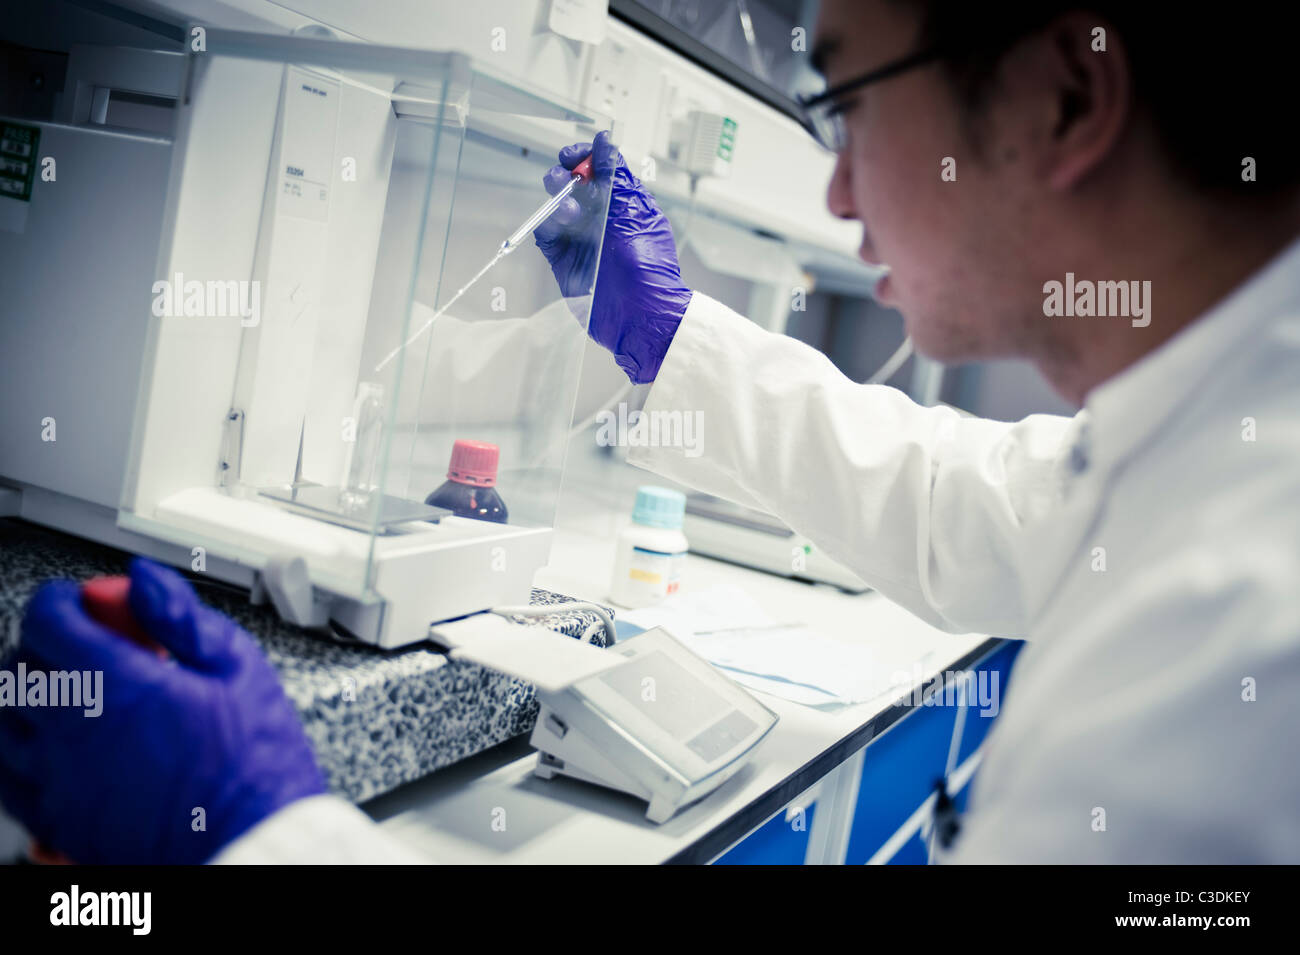 Asian male scientist in white lab coat and purple gloves with pipette in lab at scales - Stock Image